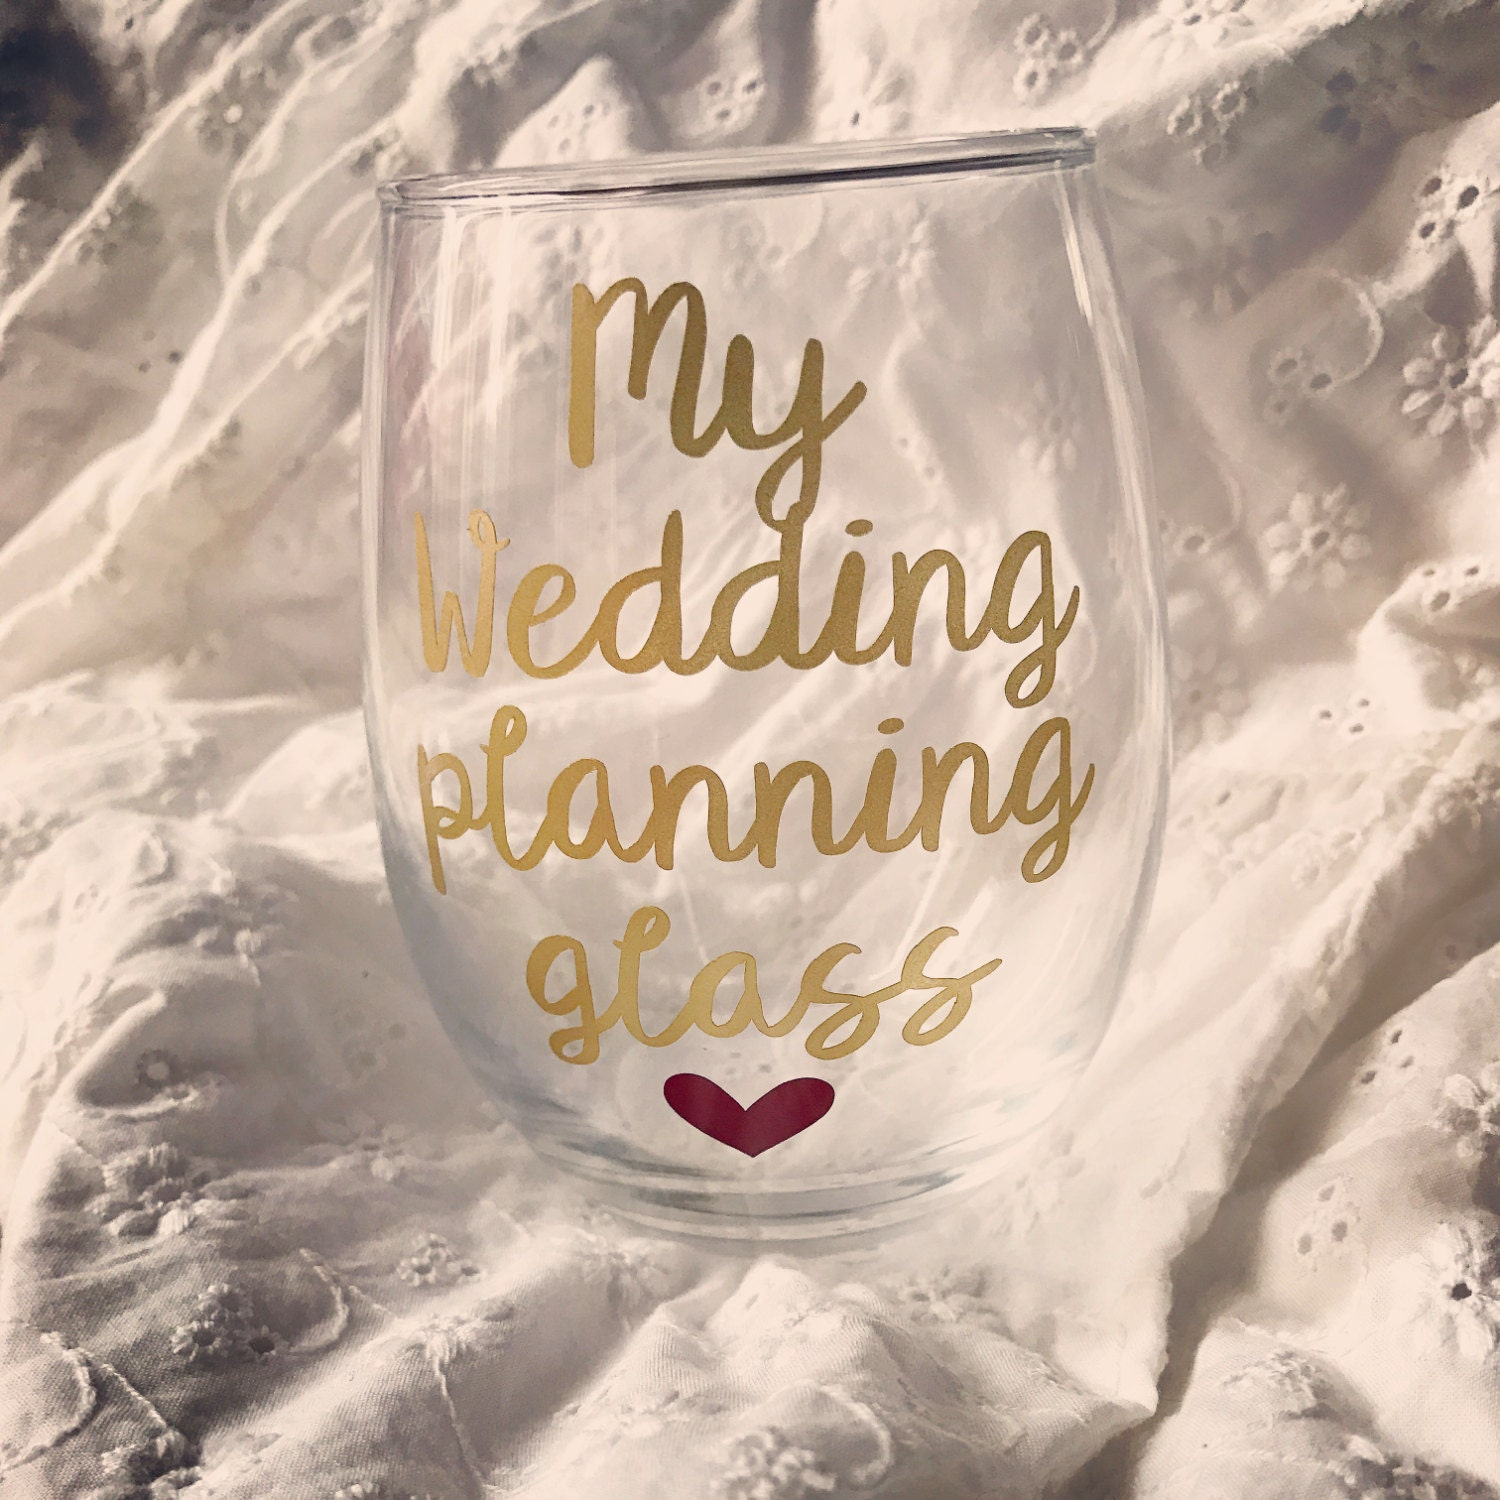 Wedding Planning Glass Engagement Gift Engagement Gifts For